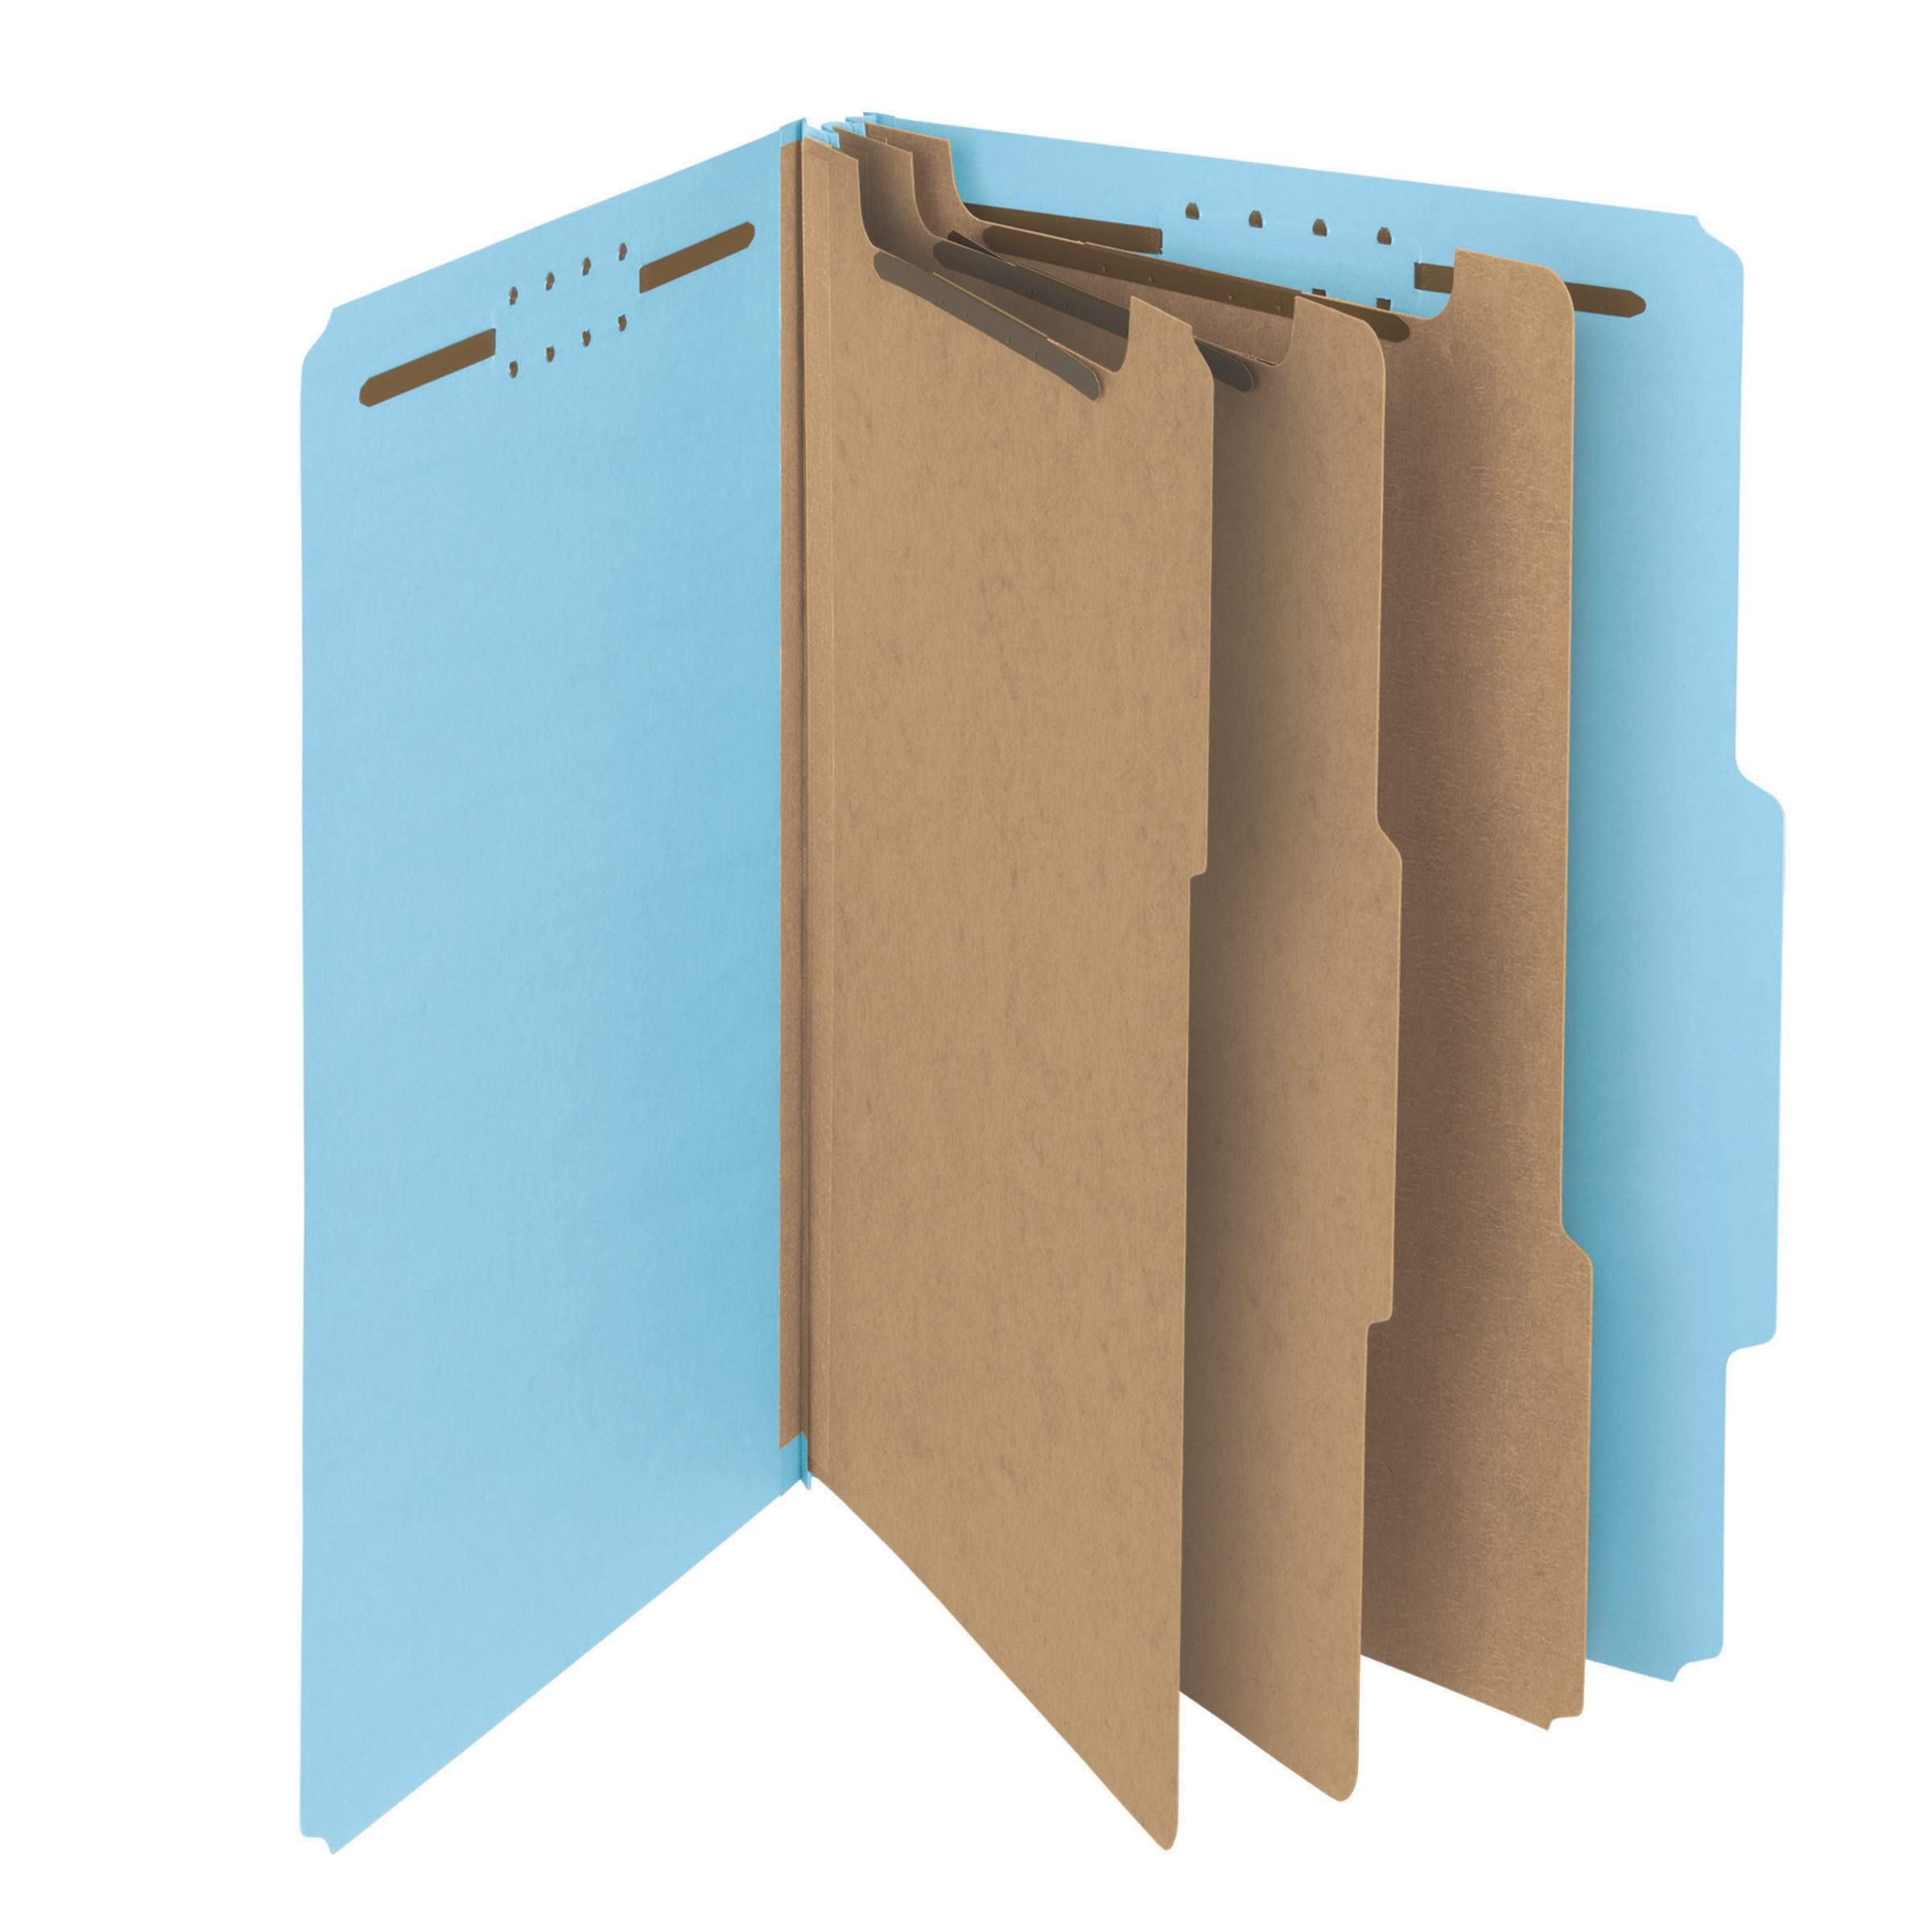 Smead 100% Recycled Pressboard Classification File Folder, 3 Dividers, 3'' Expansion, Legal Size, Blue, 10 per Box (19090) by Smead